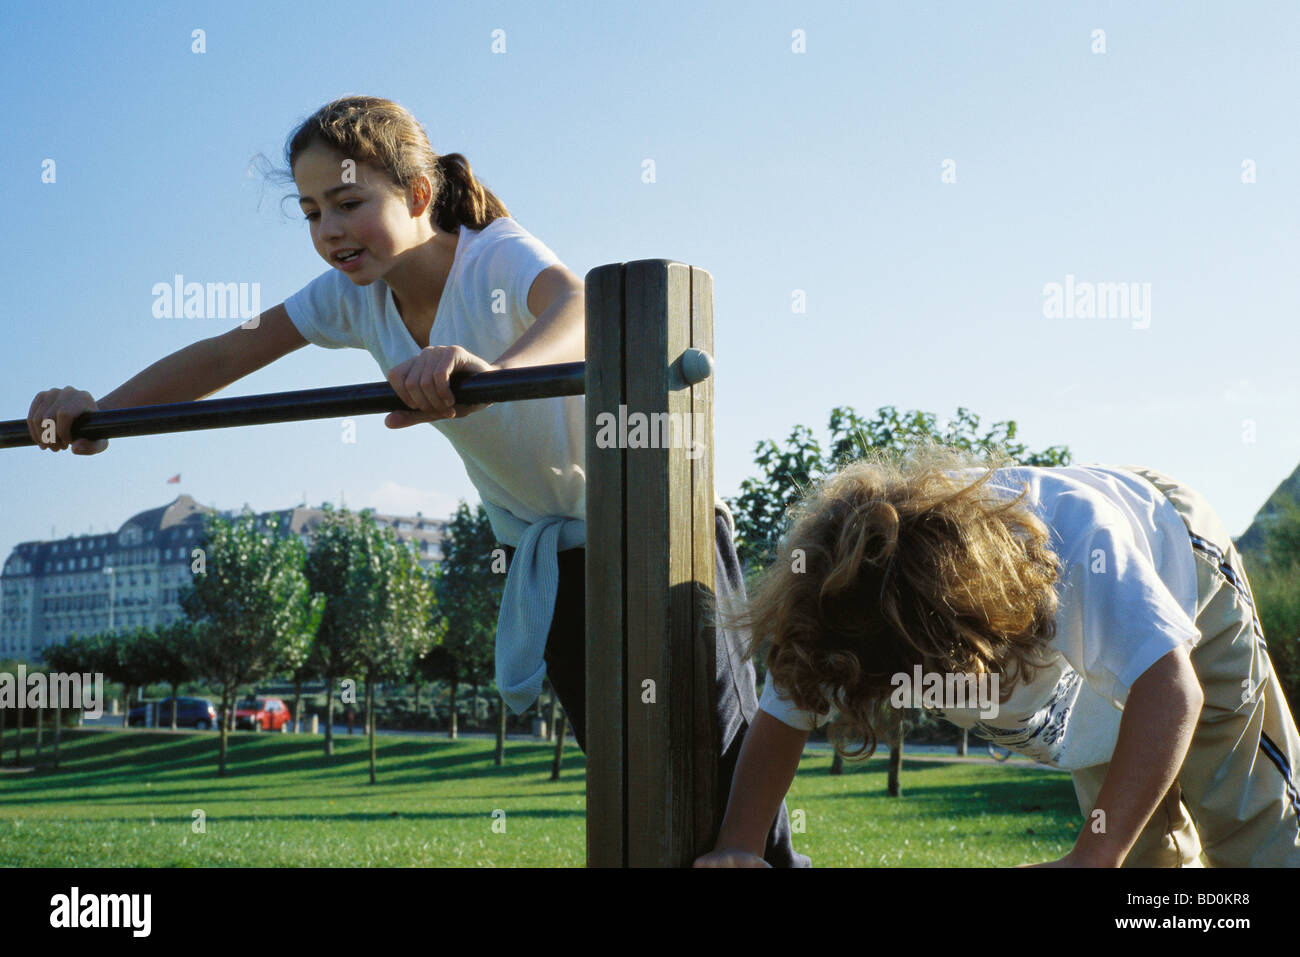 Girls playing on bars at park Stock Photo